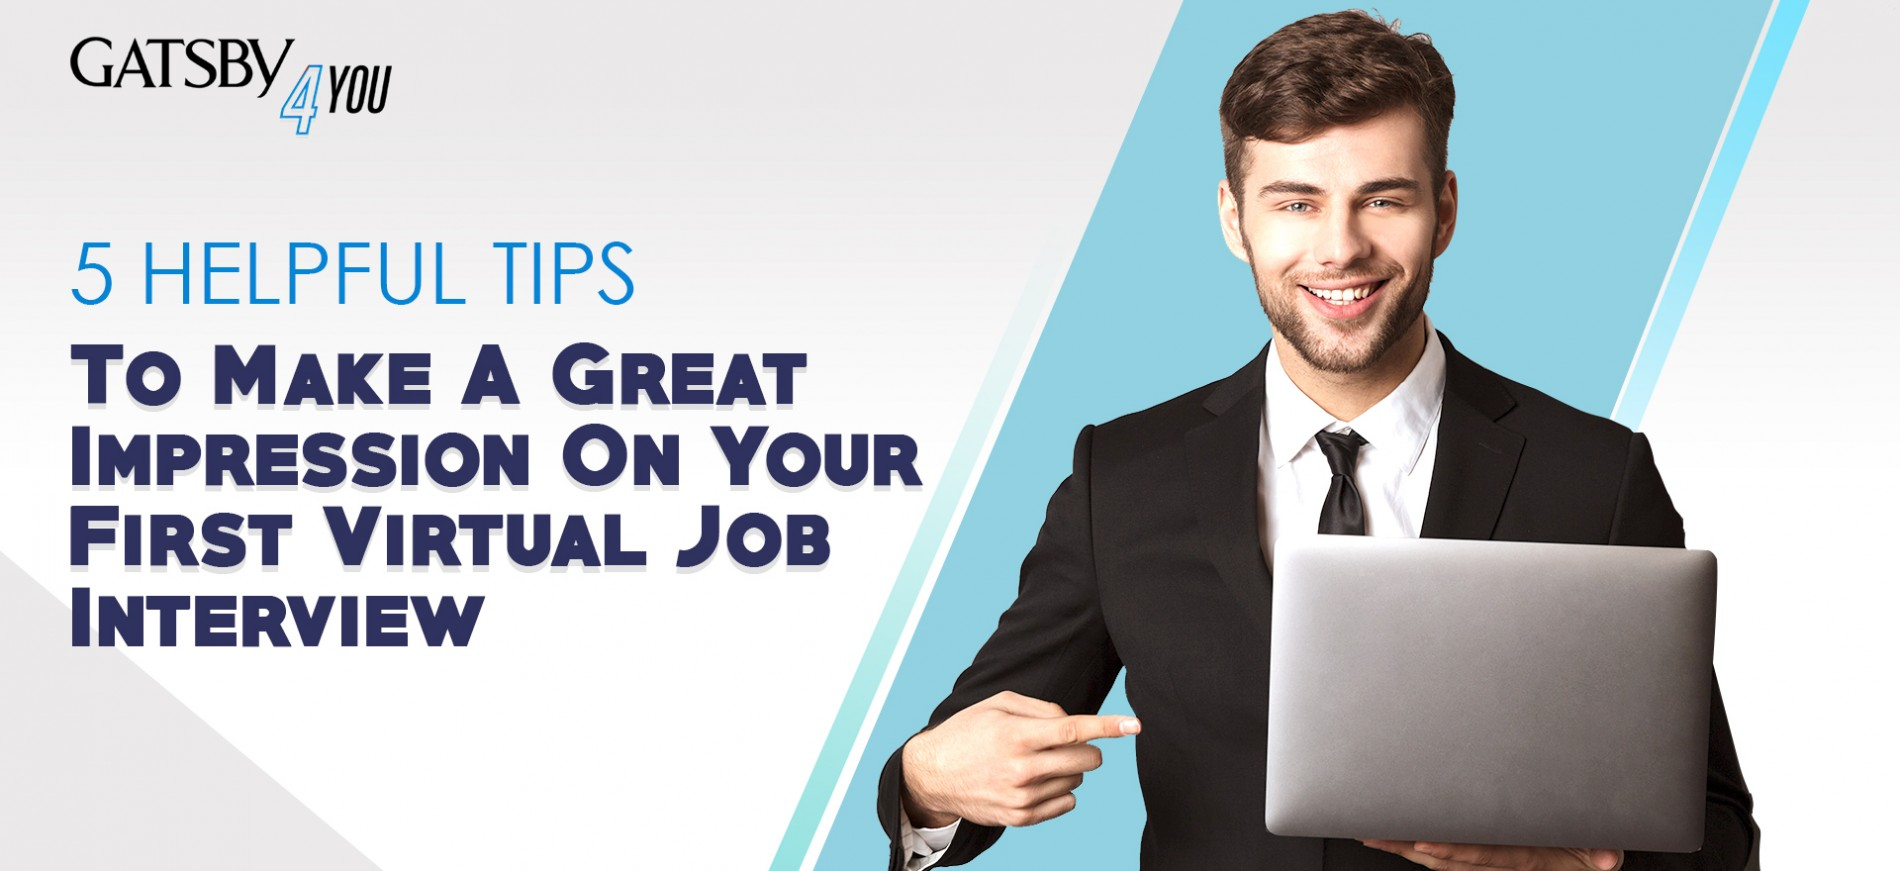 Gatsby Philippines Article 5 Helpful Tips for an Online Job Interview